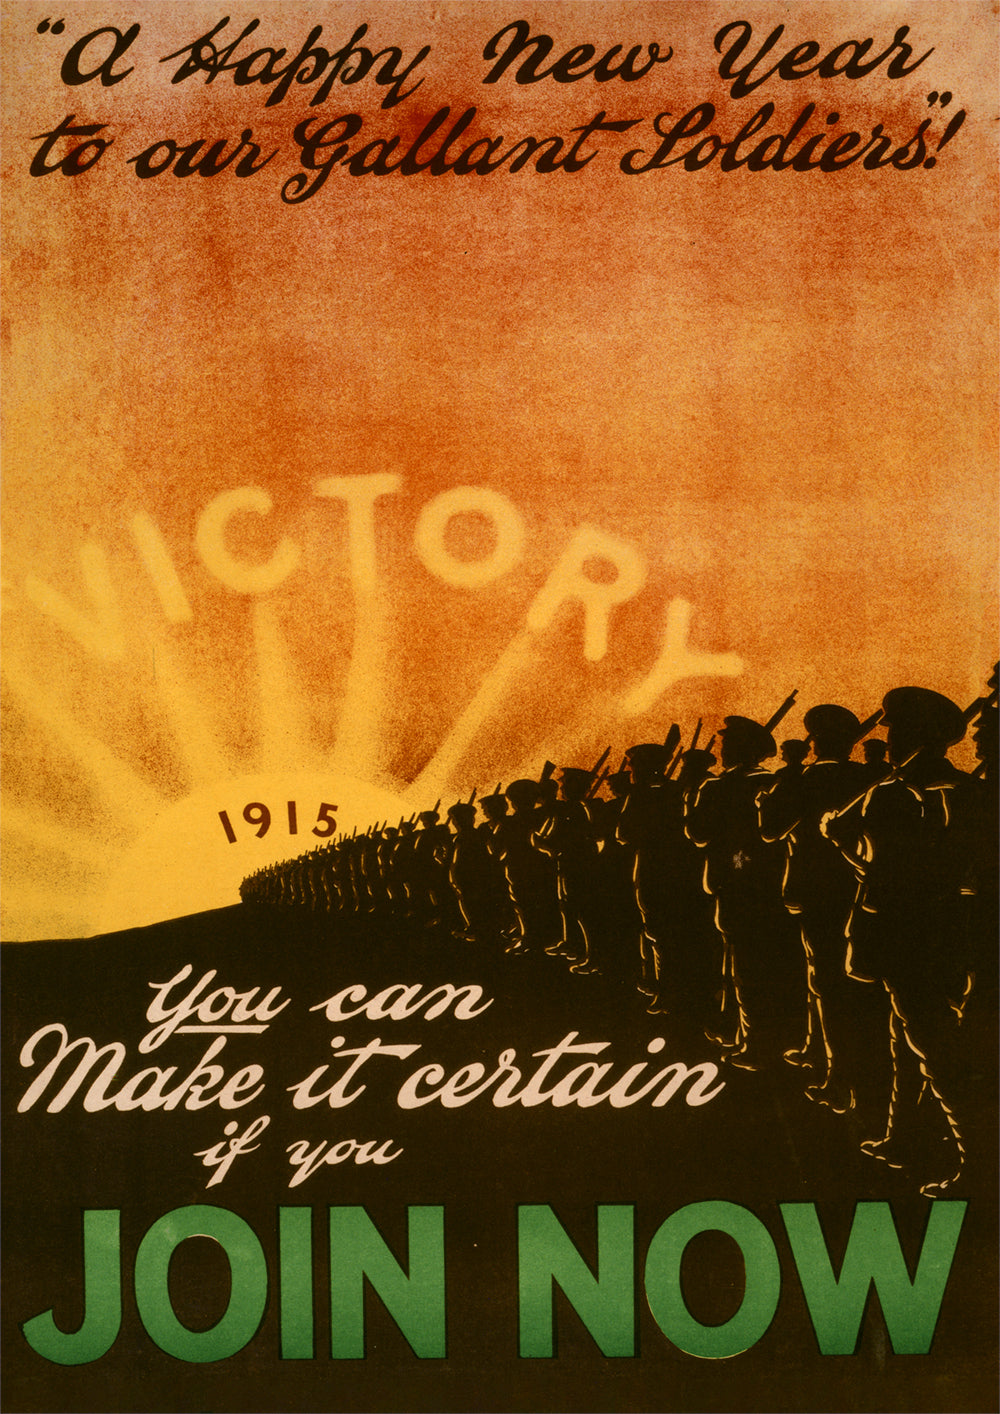 A Happy New Year to our gallant soldiers! – British World War One poster